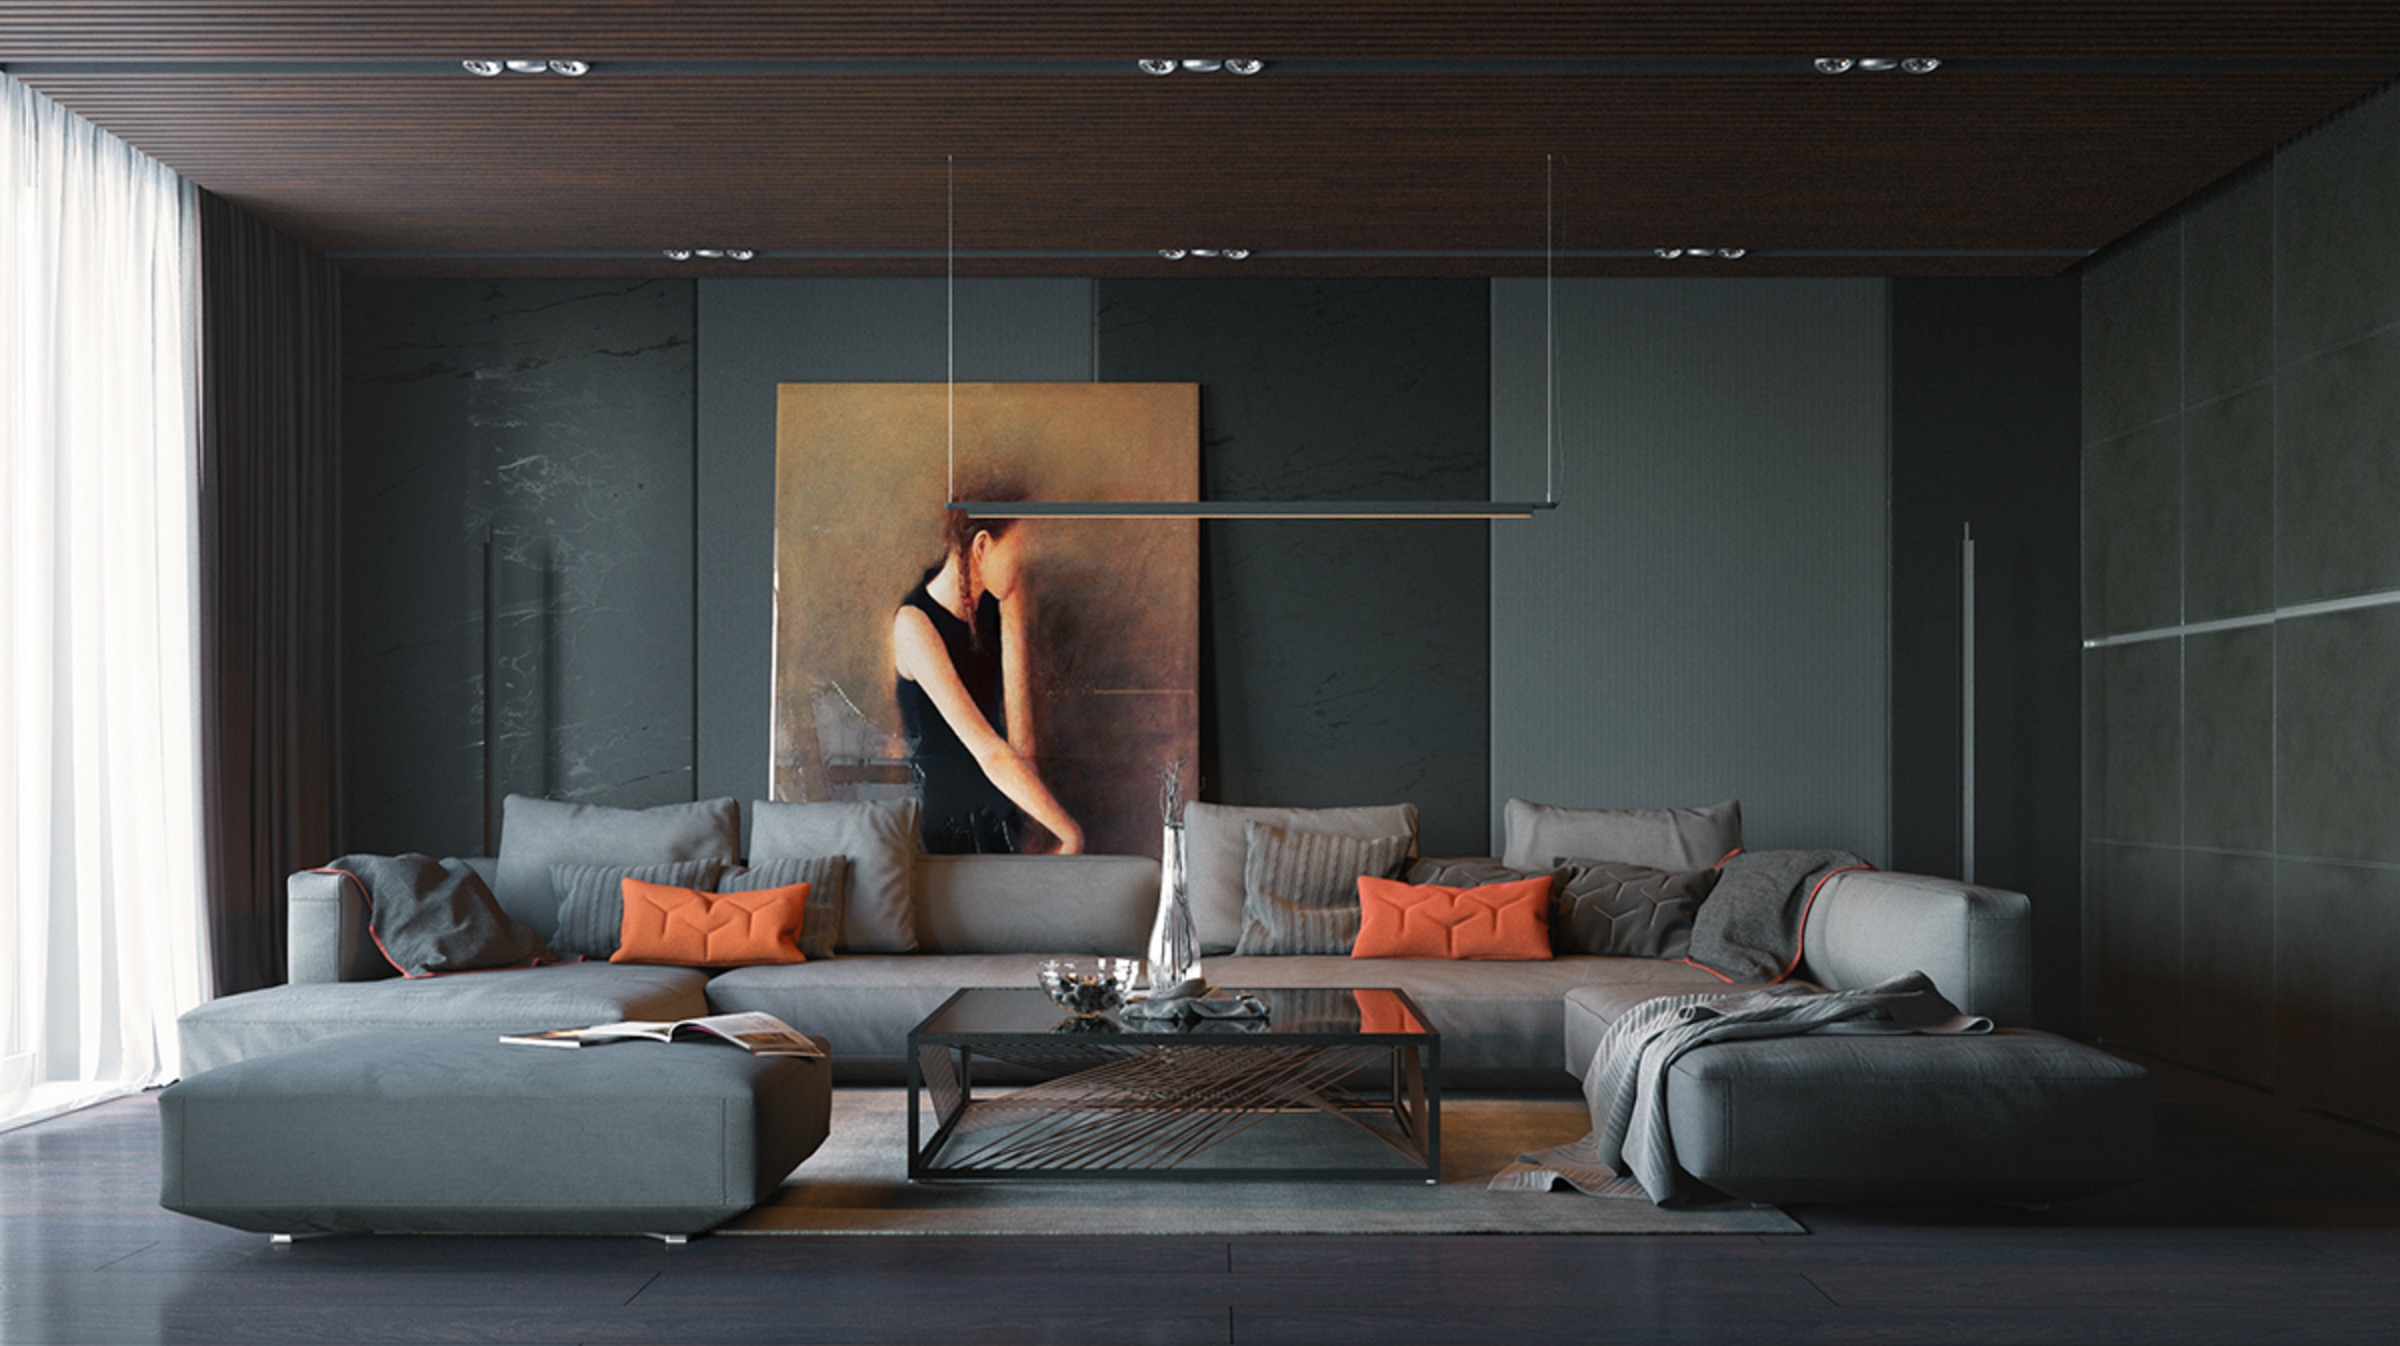 Latest wall paint texture designs for living room - Living Room Designs Using Substantial Artwork Within A Stylish Interior